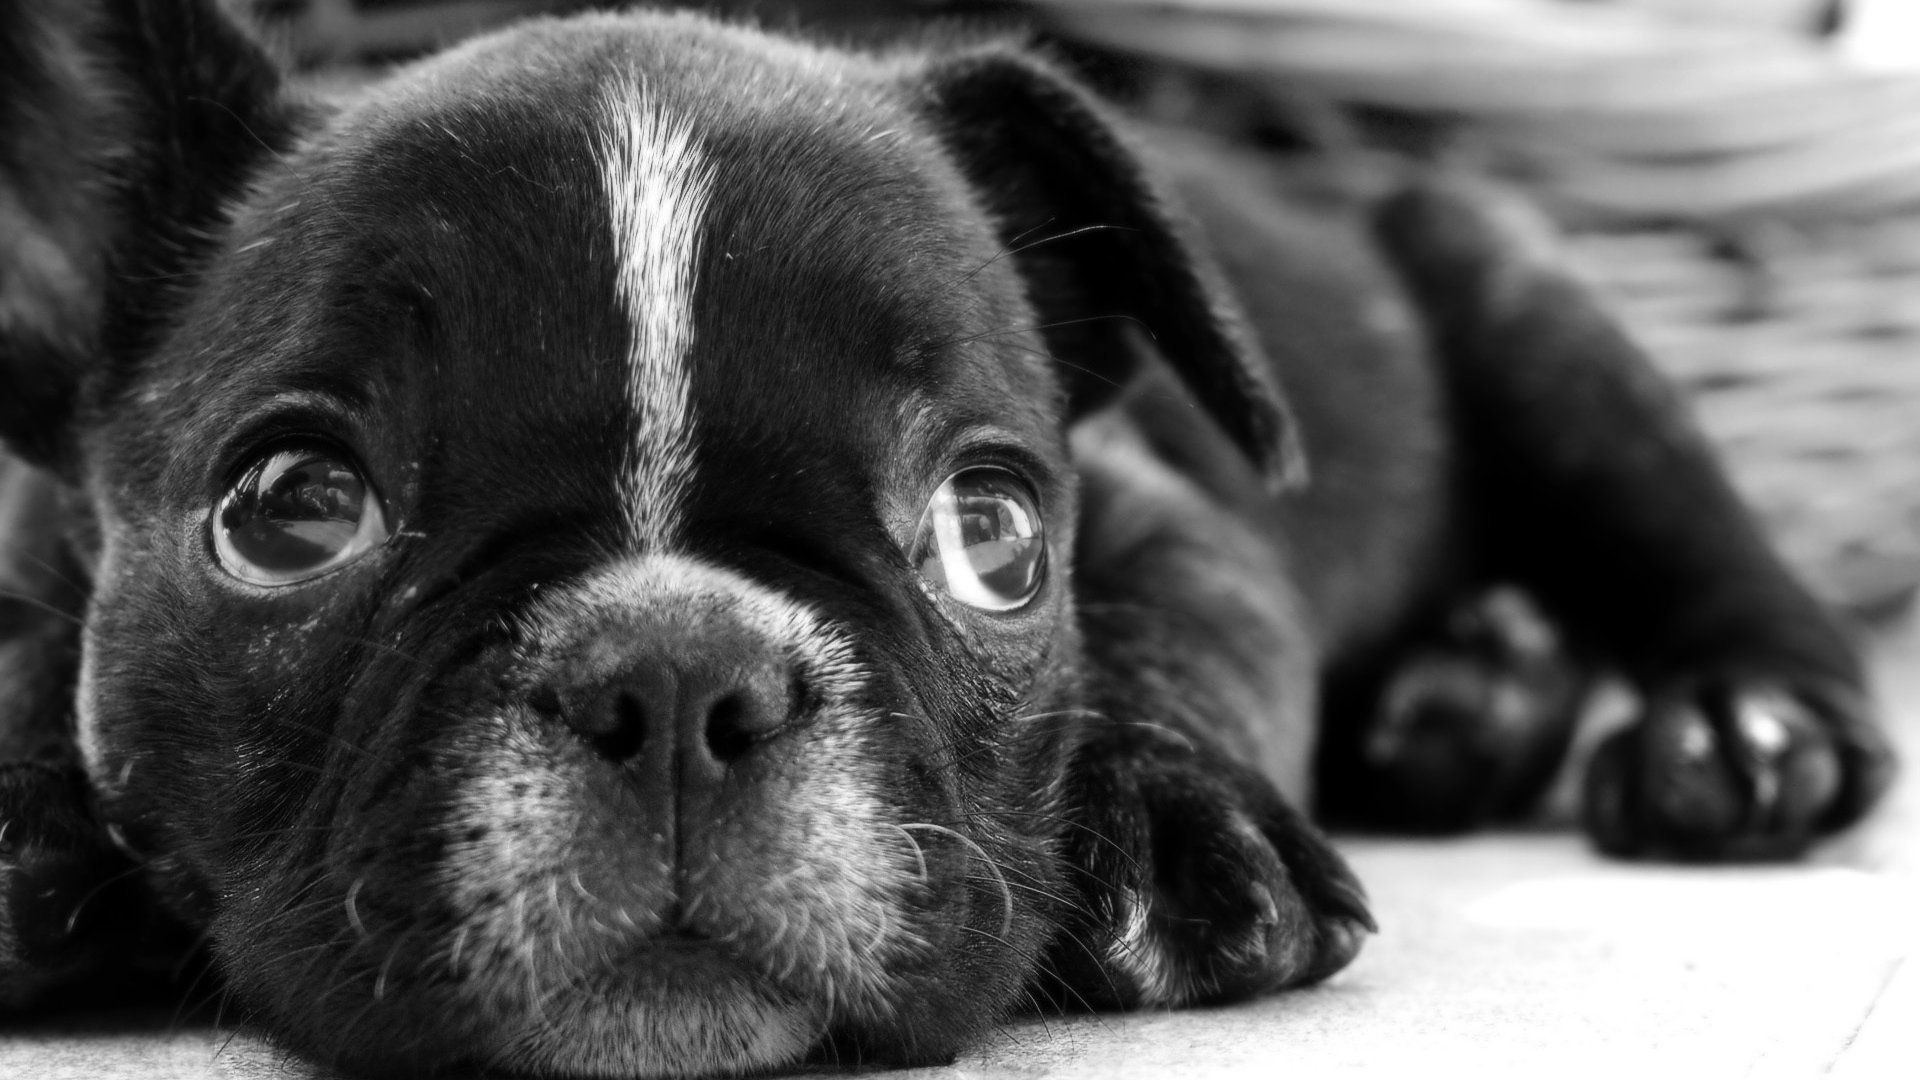 Cute Black And White wallpaper photo hd